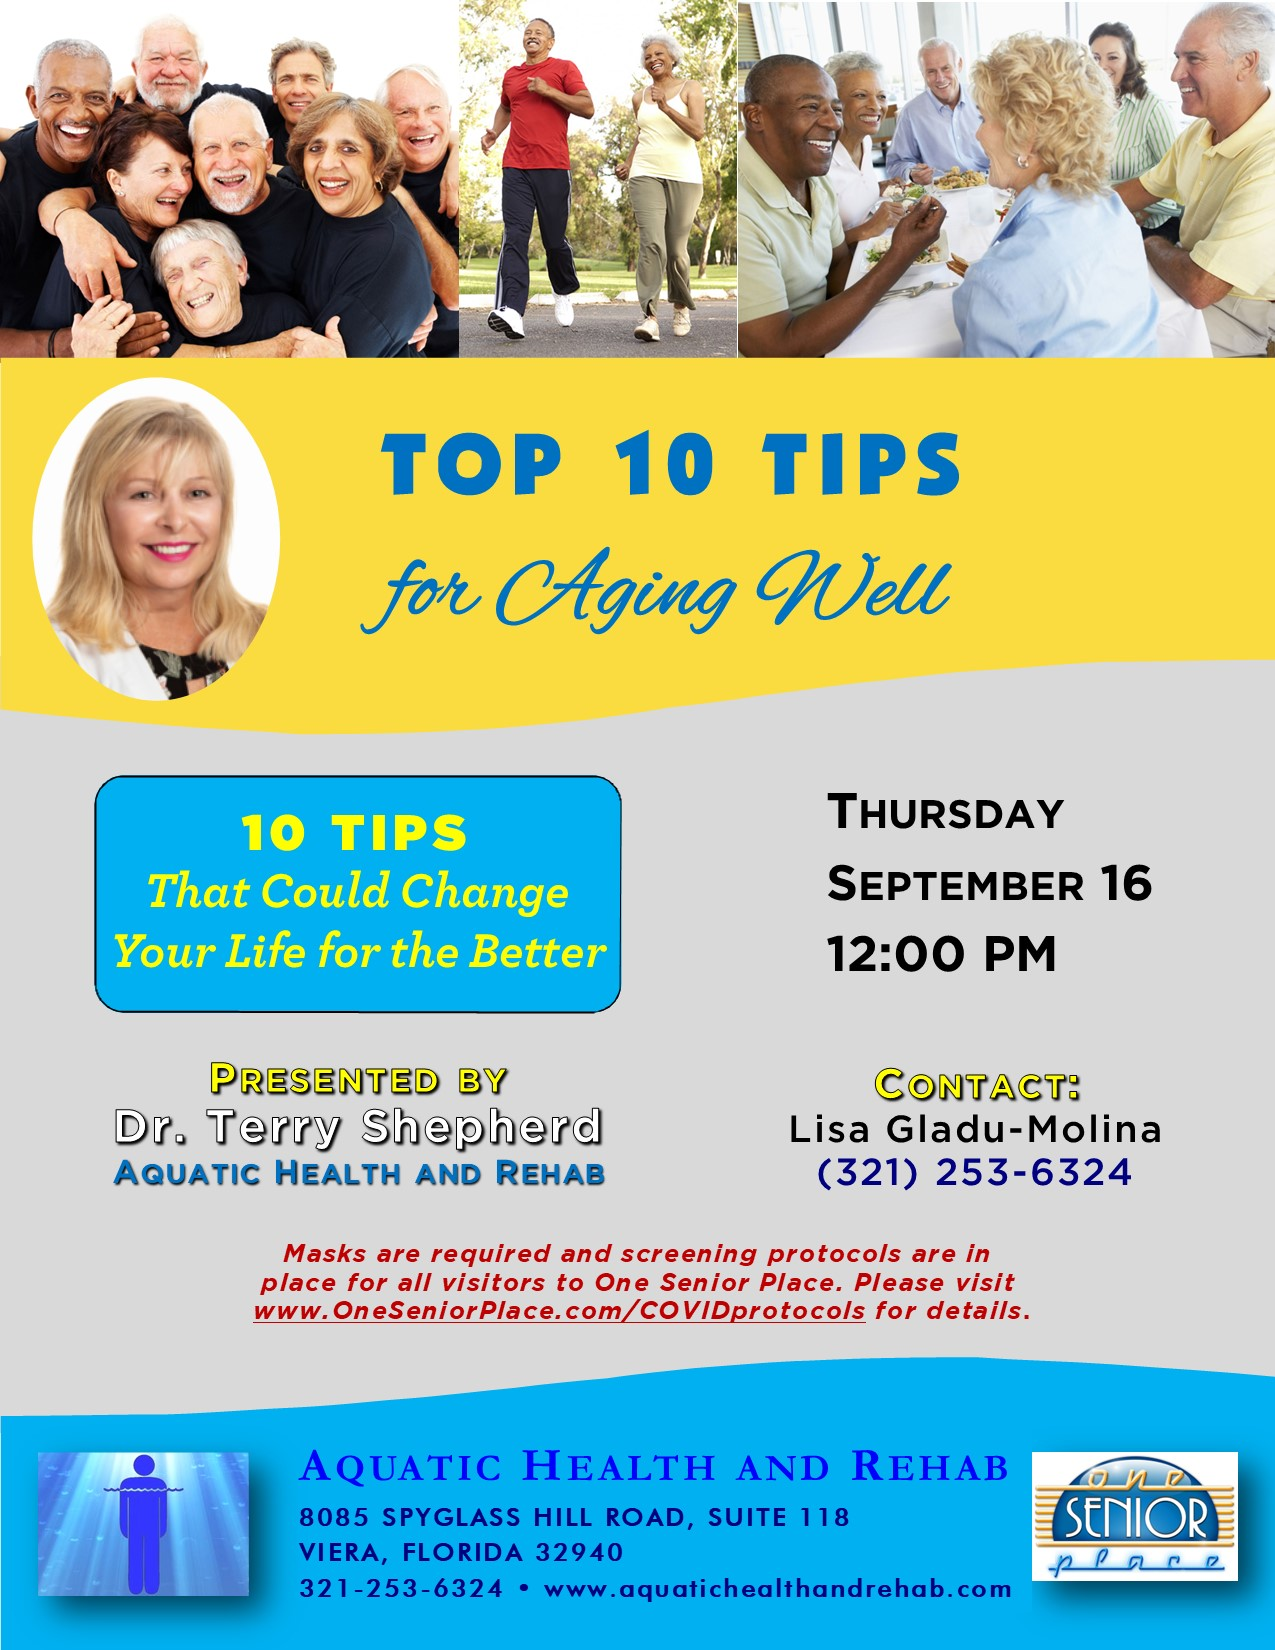 Top 10 Tips for Aging Well presented by Aquatic Health and Rehab